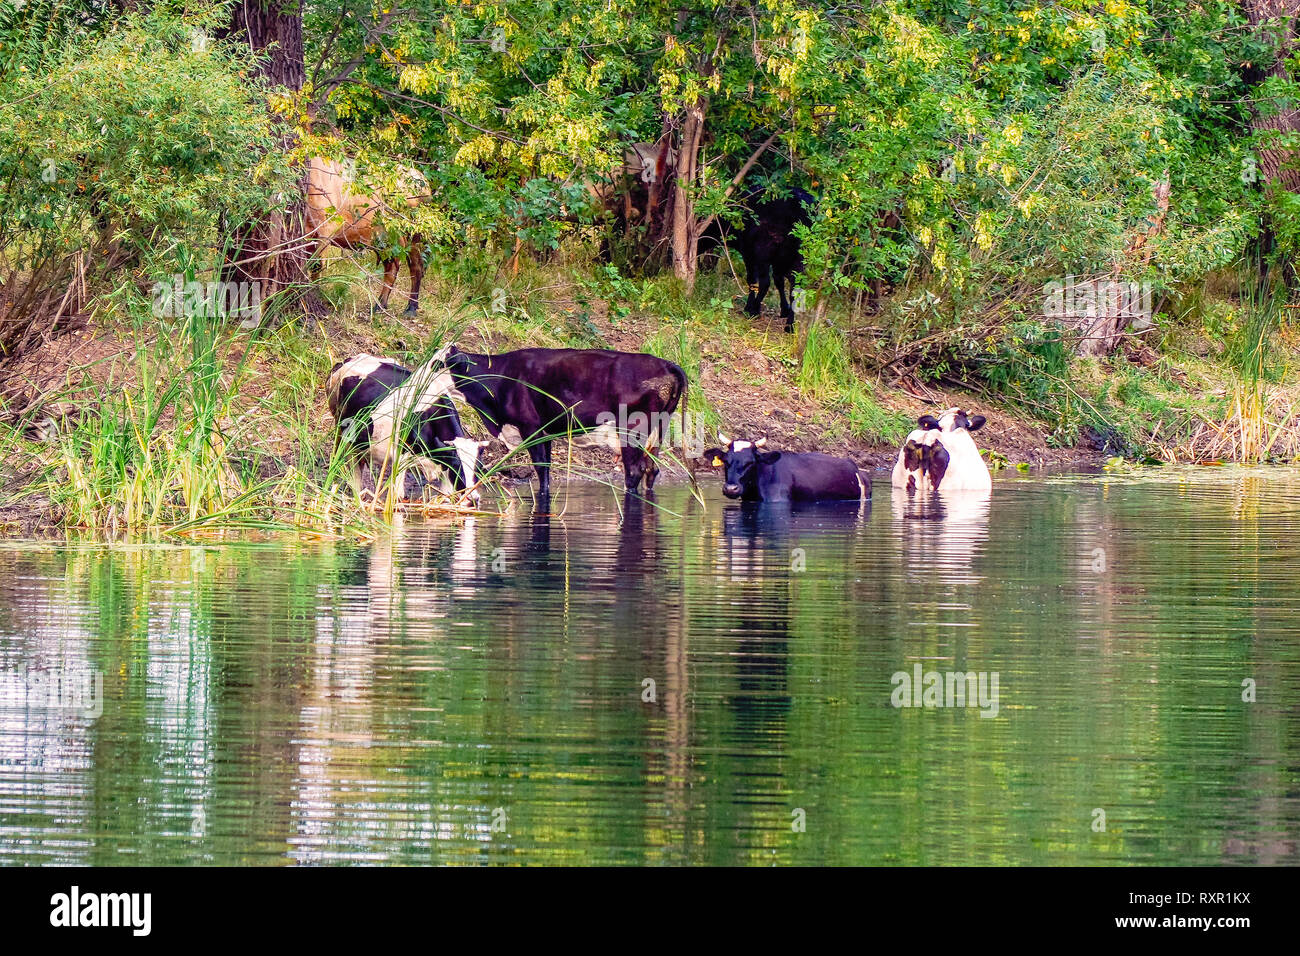 Cows stand in the water on a hot day - Stock Image